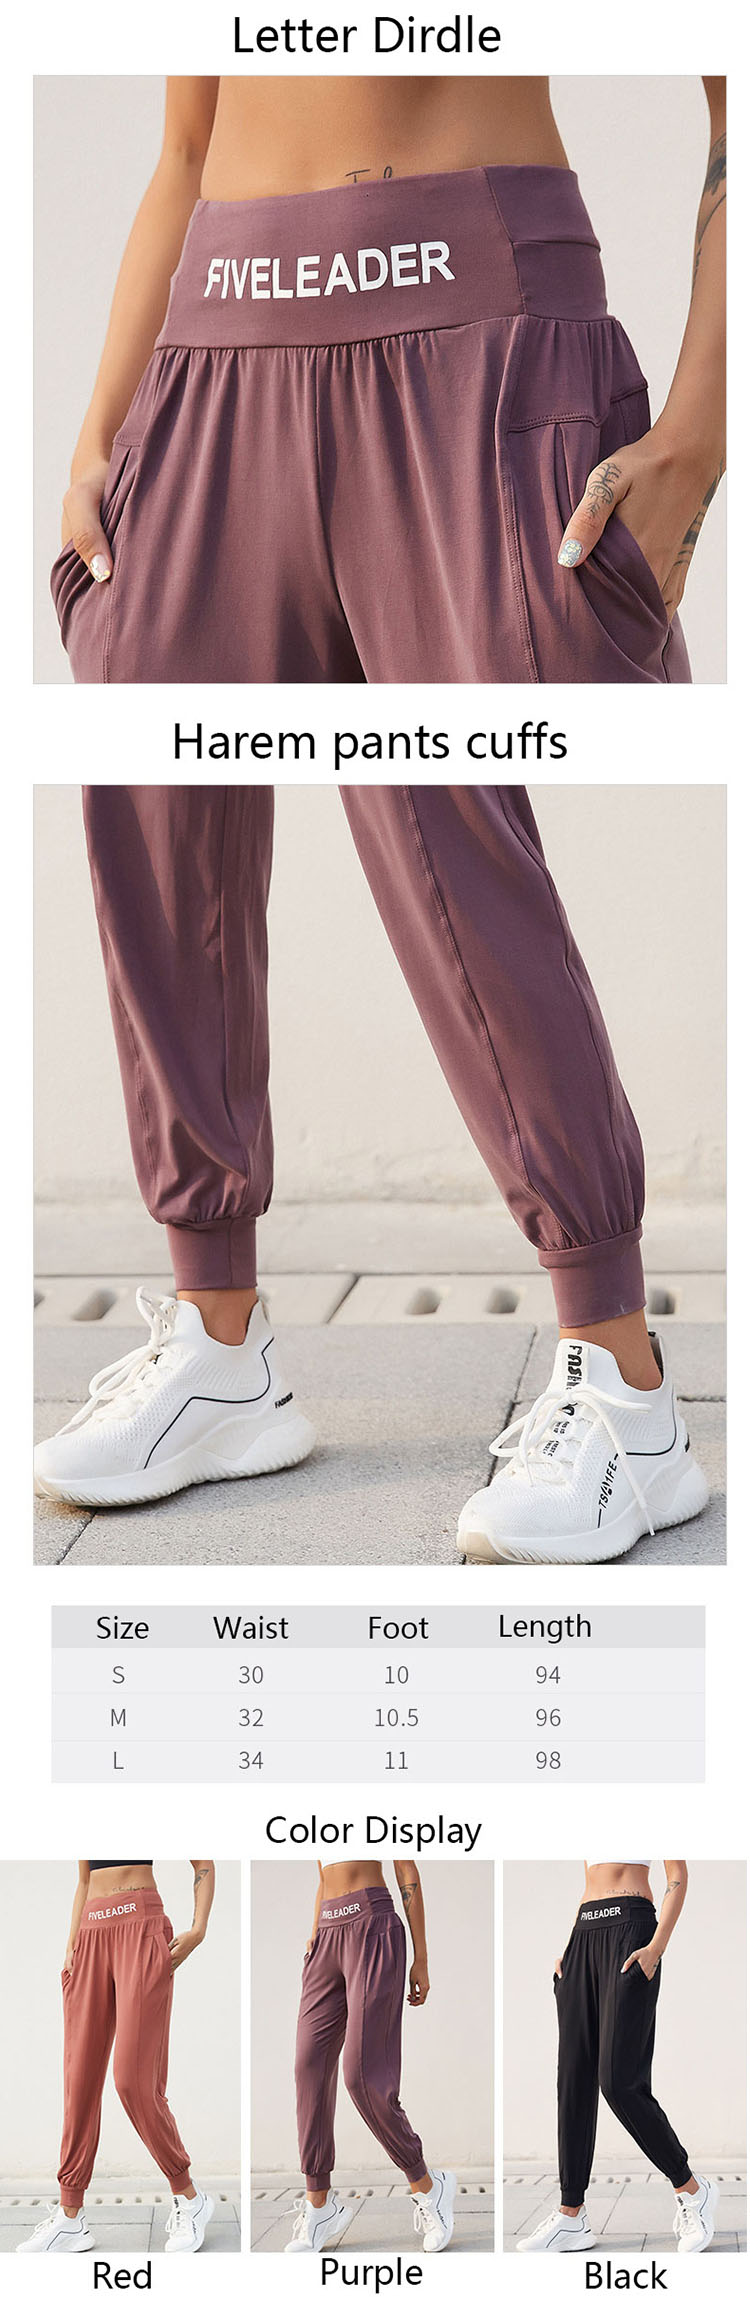 The wide leg yoga trousers make it easy to wear and easy to move